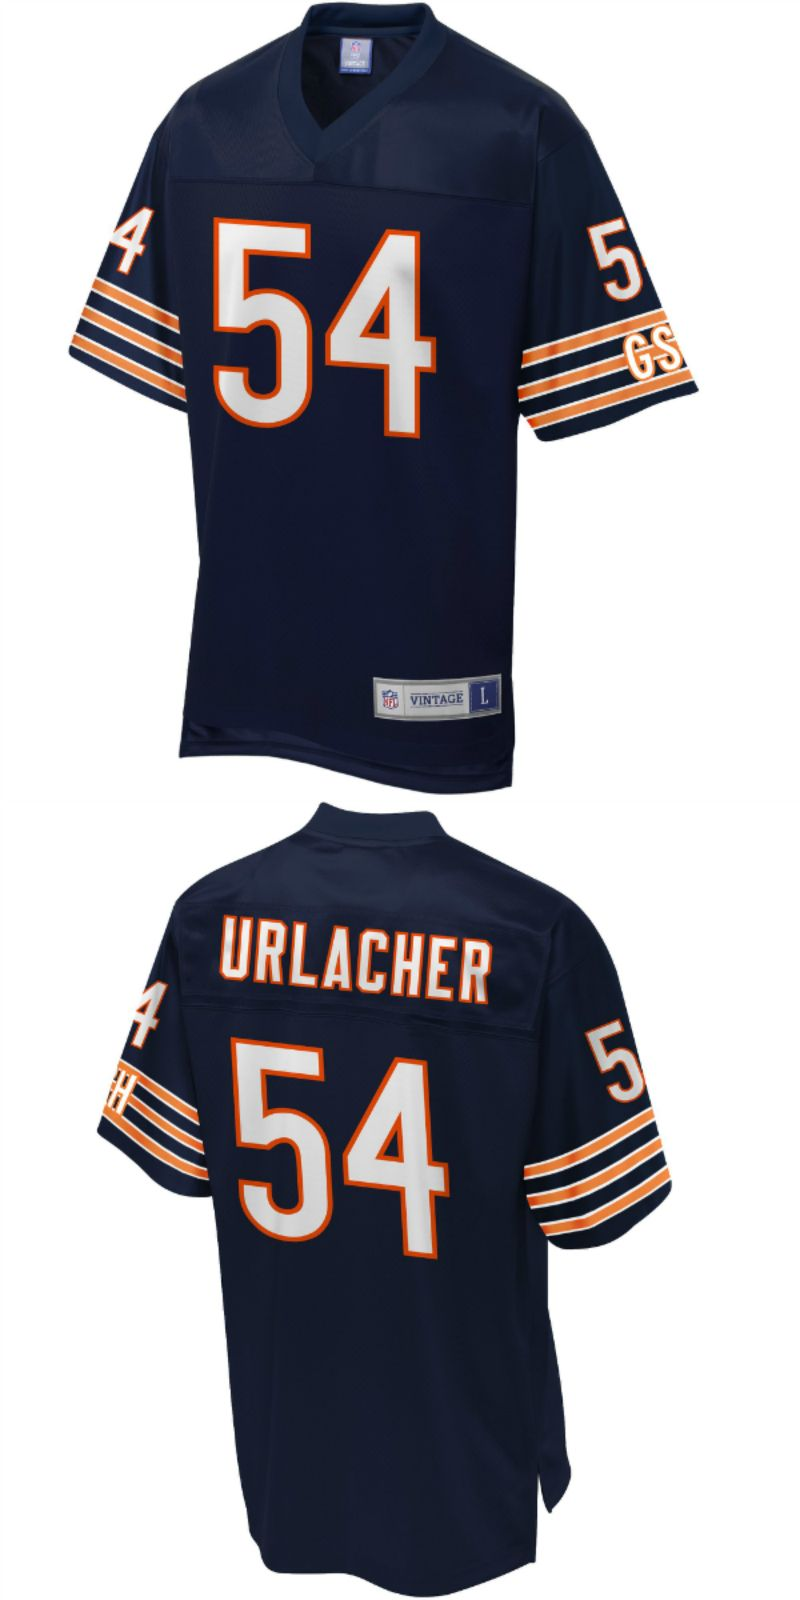 UP TO 70 OFF Brian Urlacher Chicago Bears NFL Pro Line Retired 800x1600